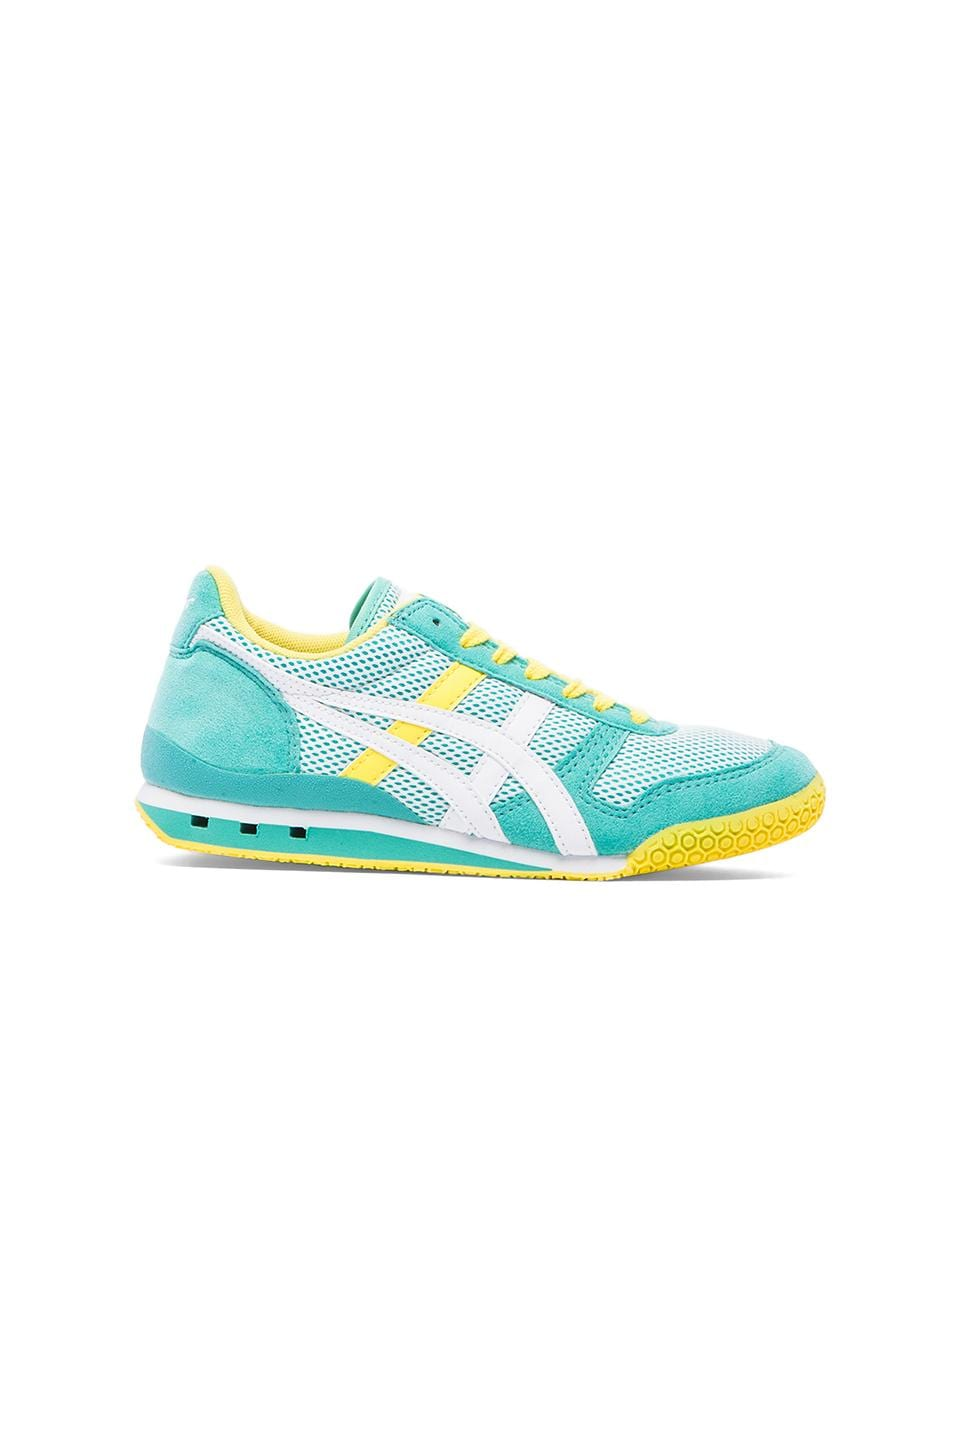 Onitsuka Tiger Ultimate 81 Sneaker in Mint & White